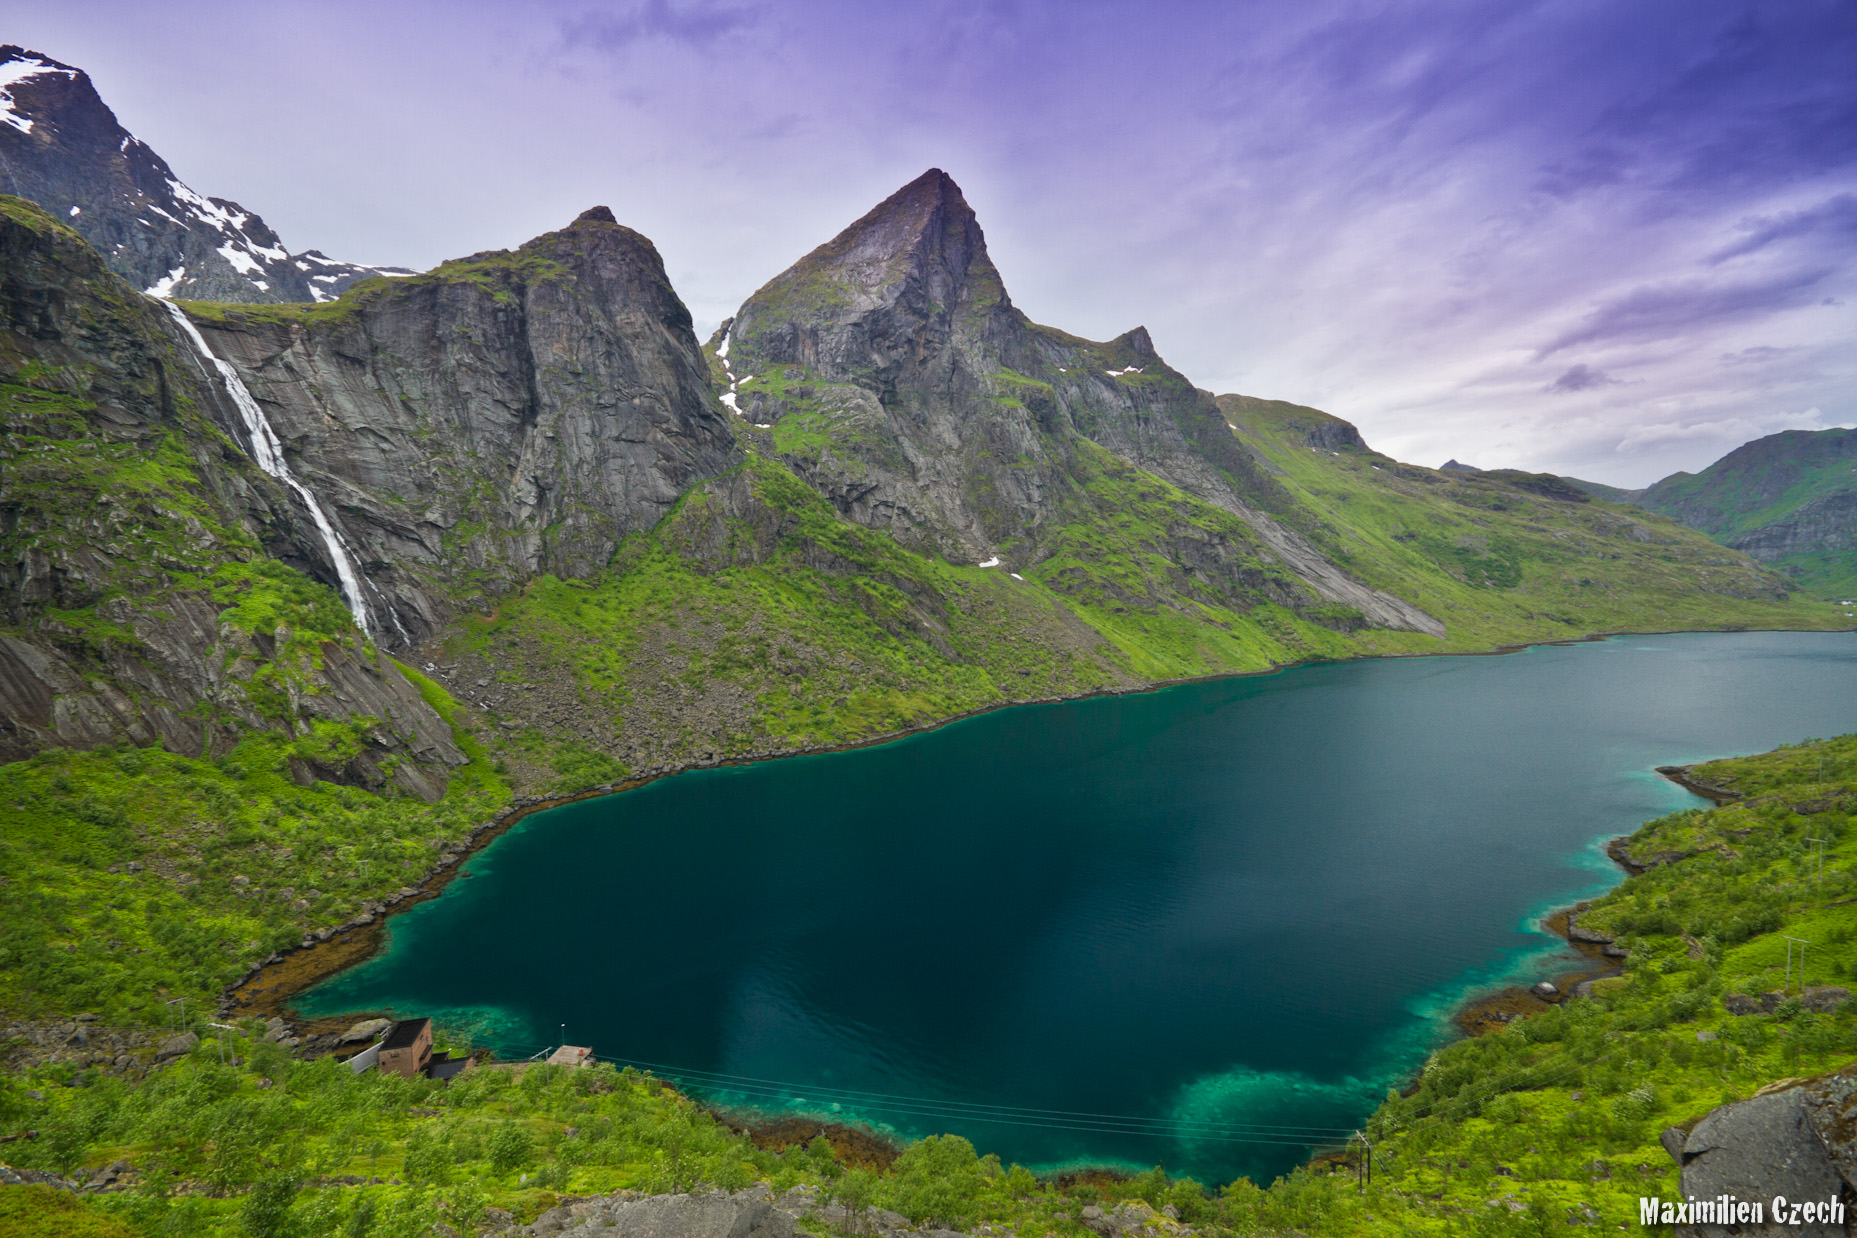 Magnificent Views Of Norway By Maximilien Czech 10 Pics